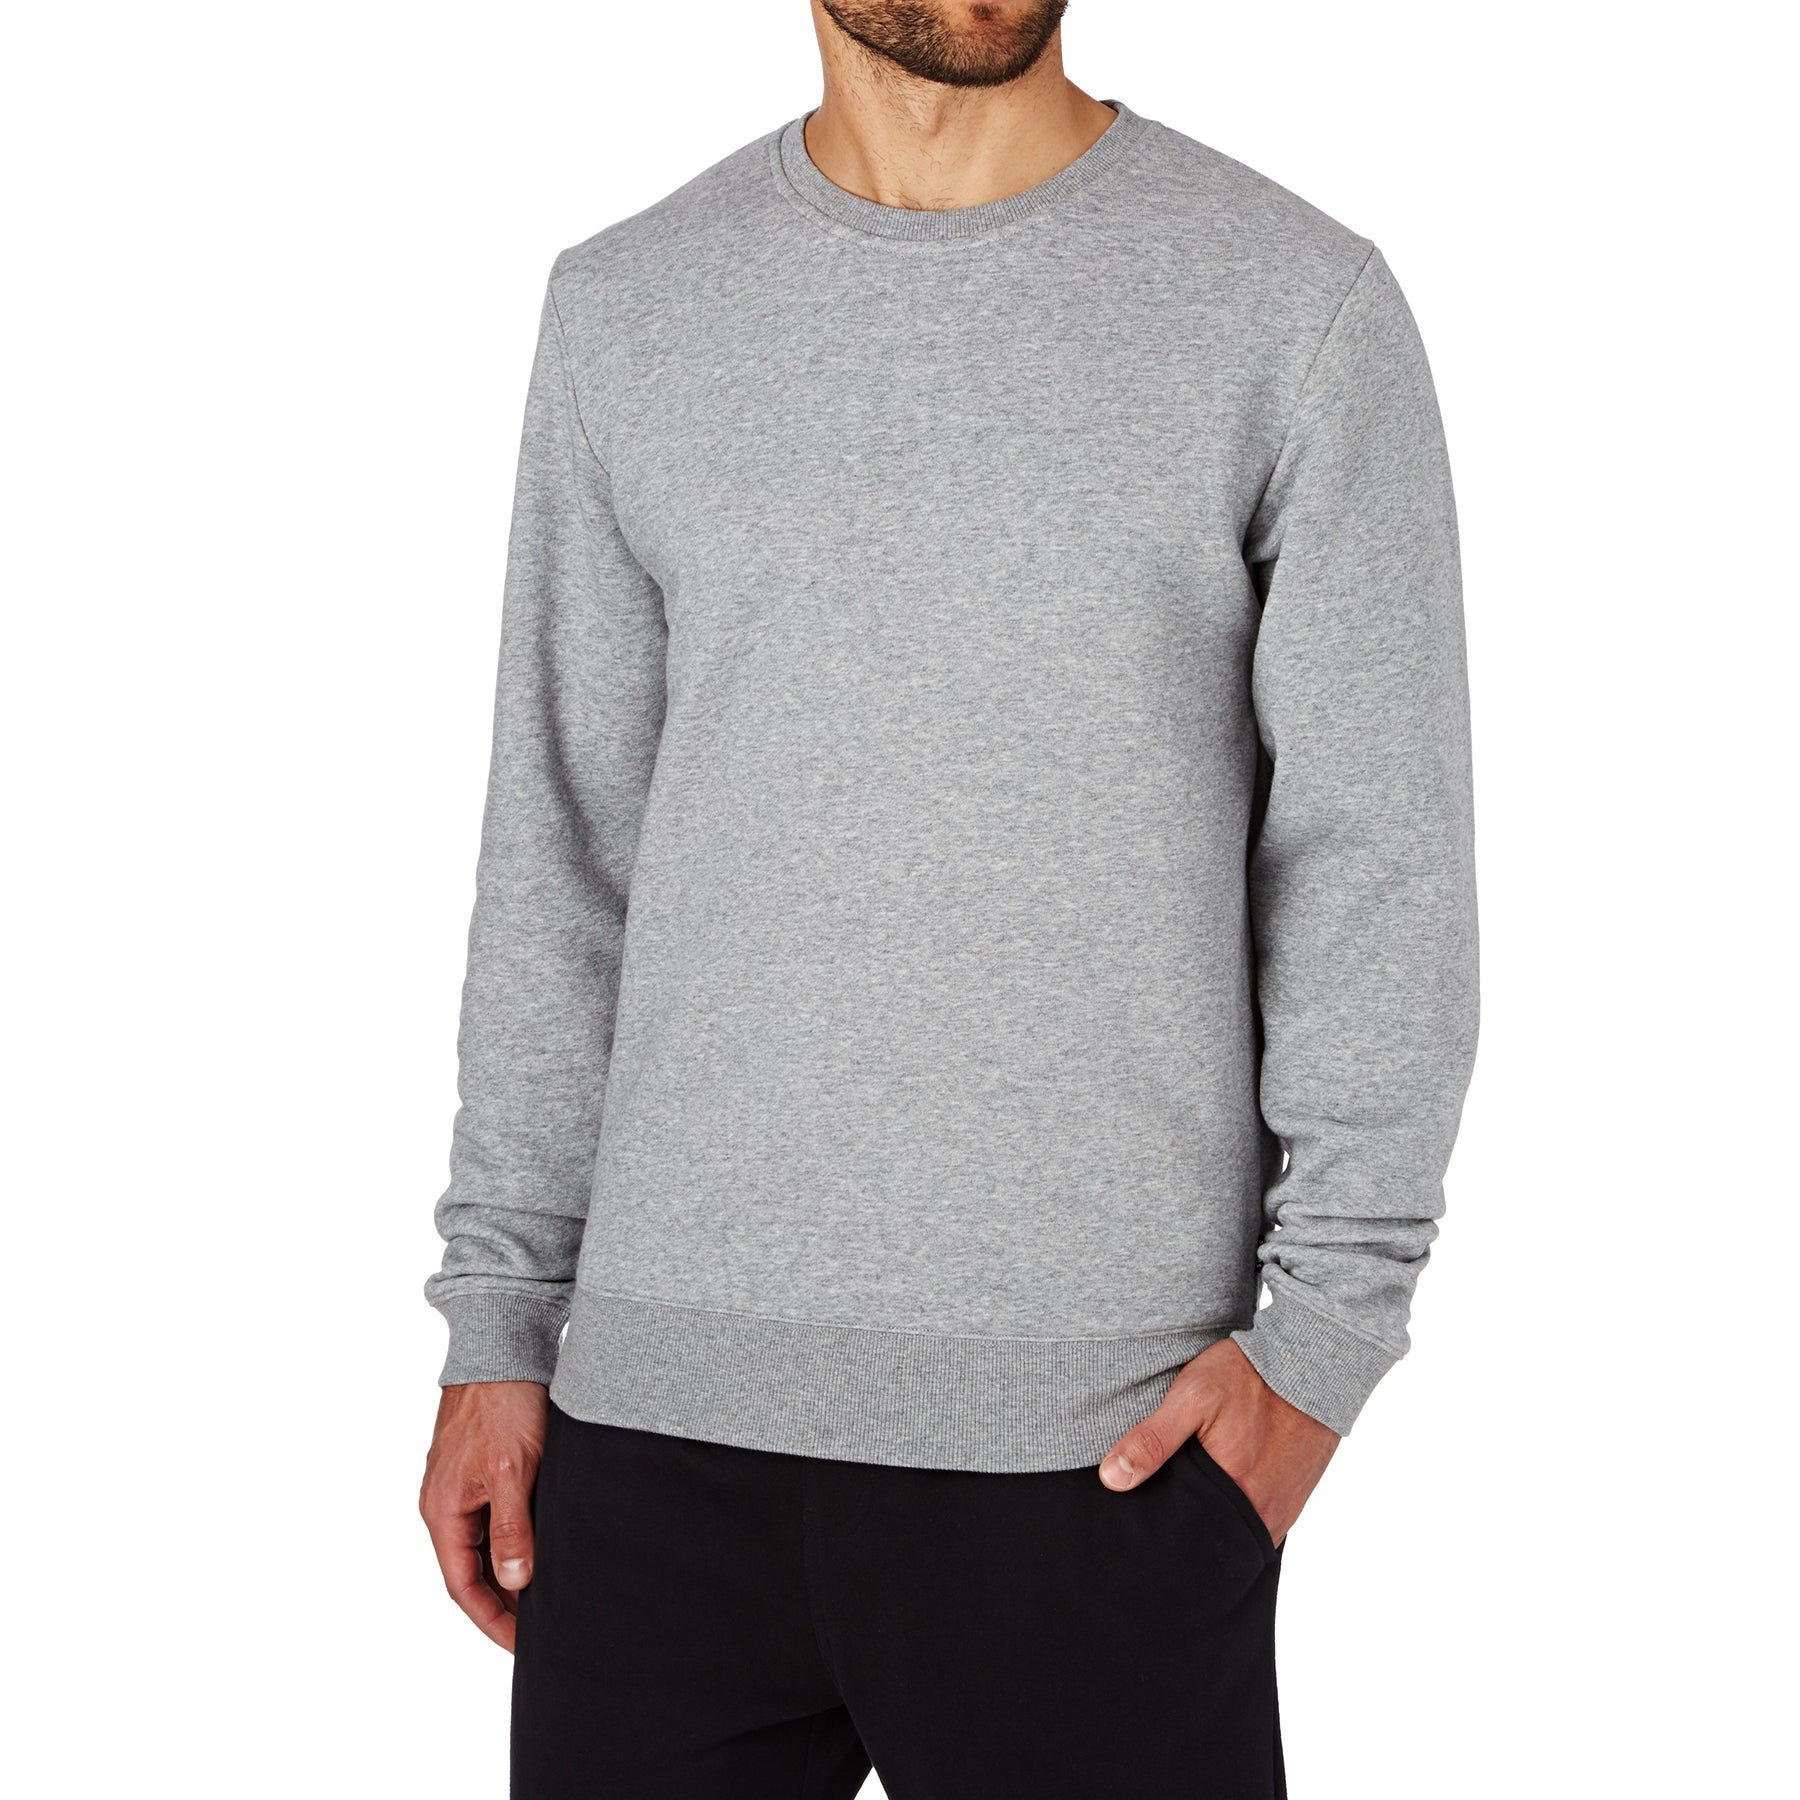 SWELL Basic Crew Sweater - Grey Marl